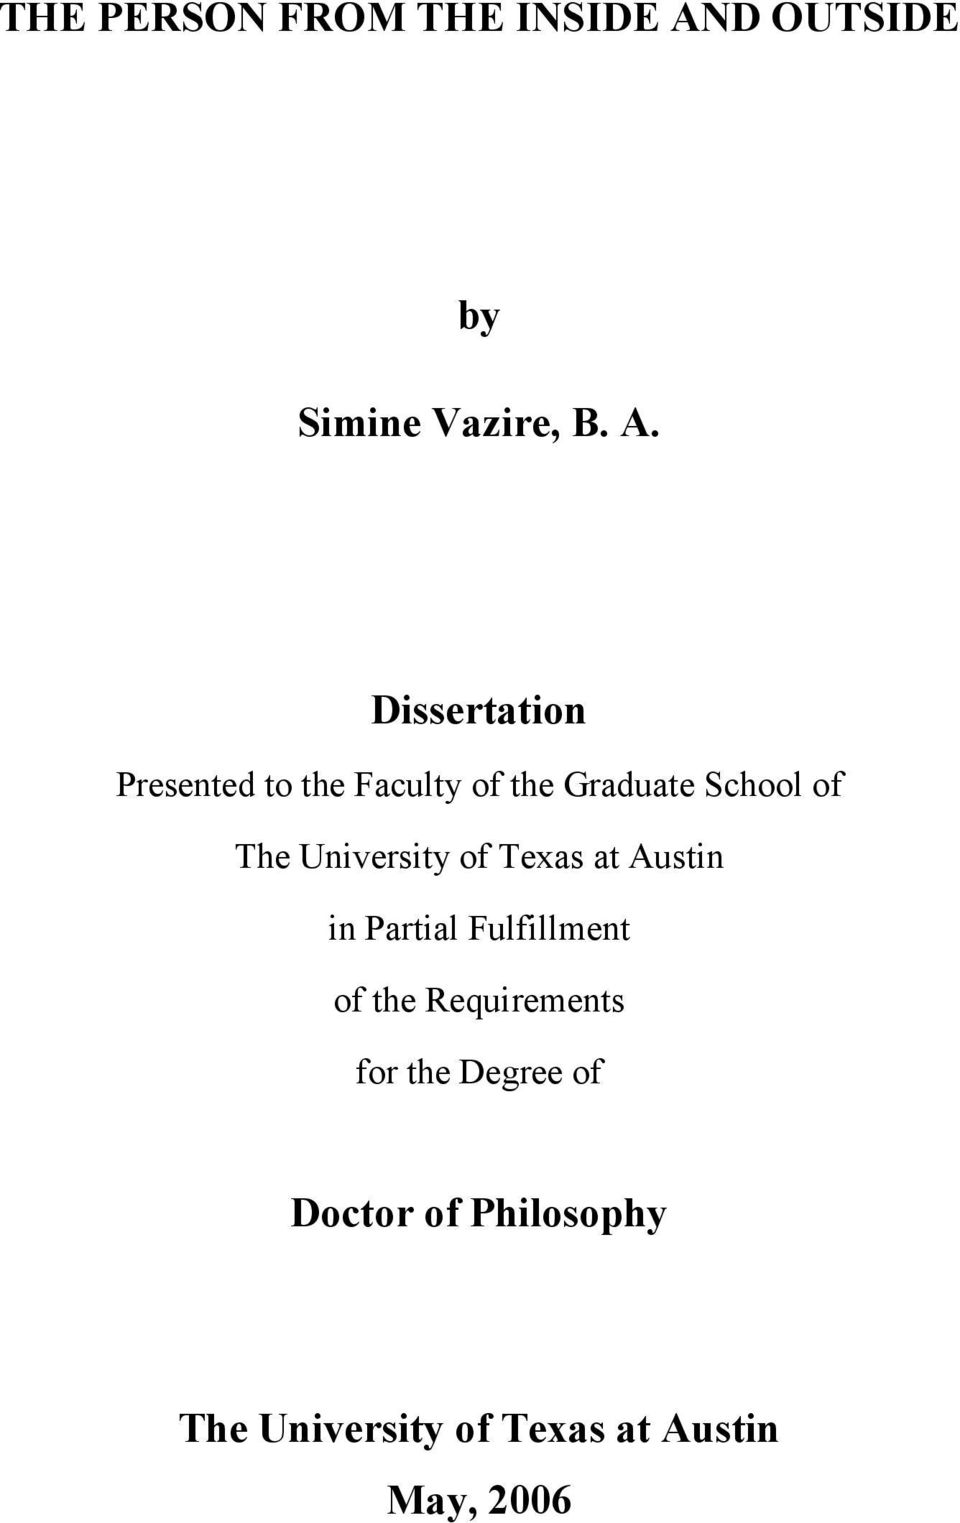 Dissertation Presented to the Faculty of the Graduate School of The